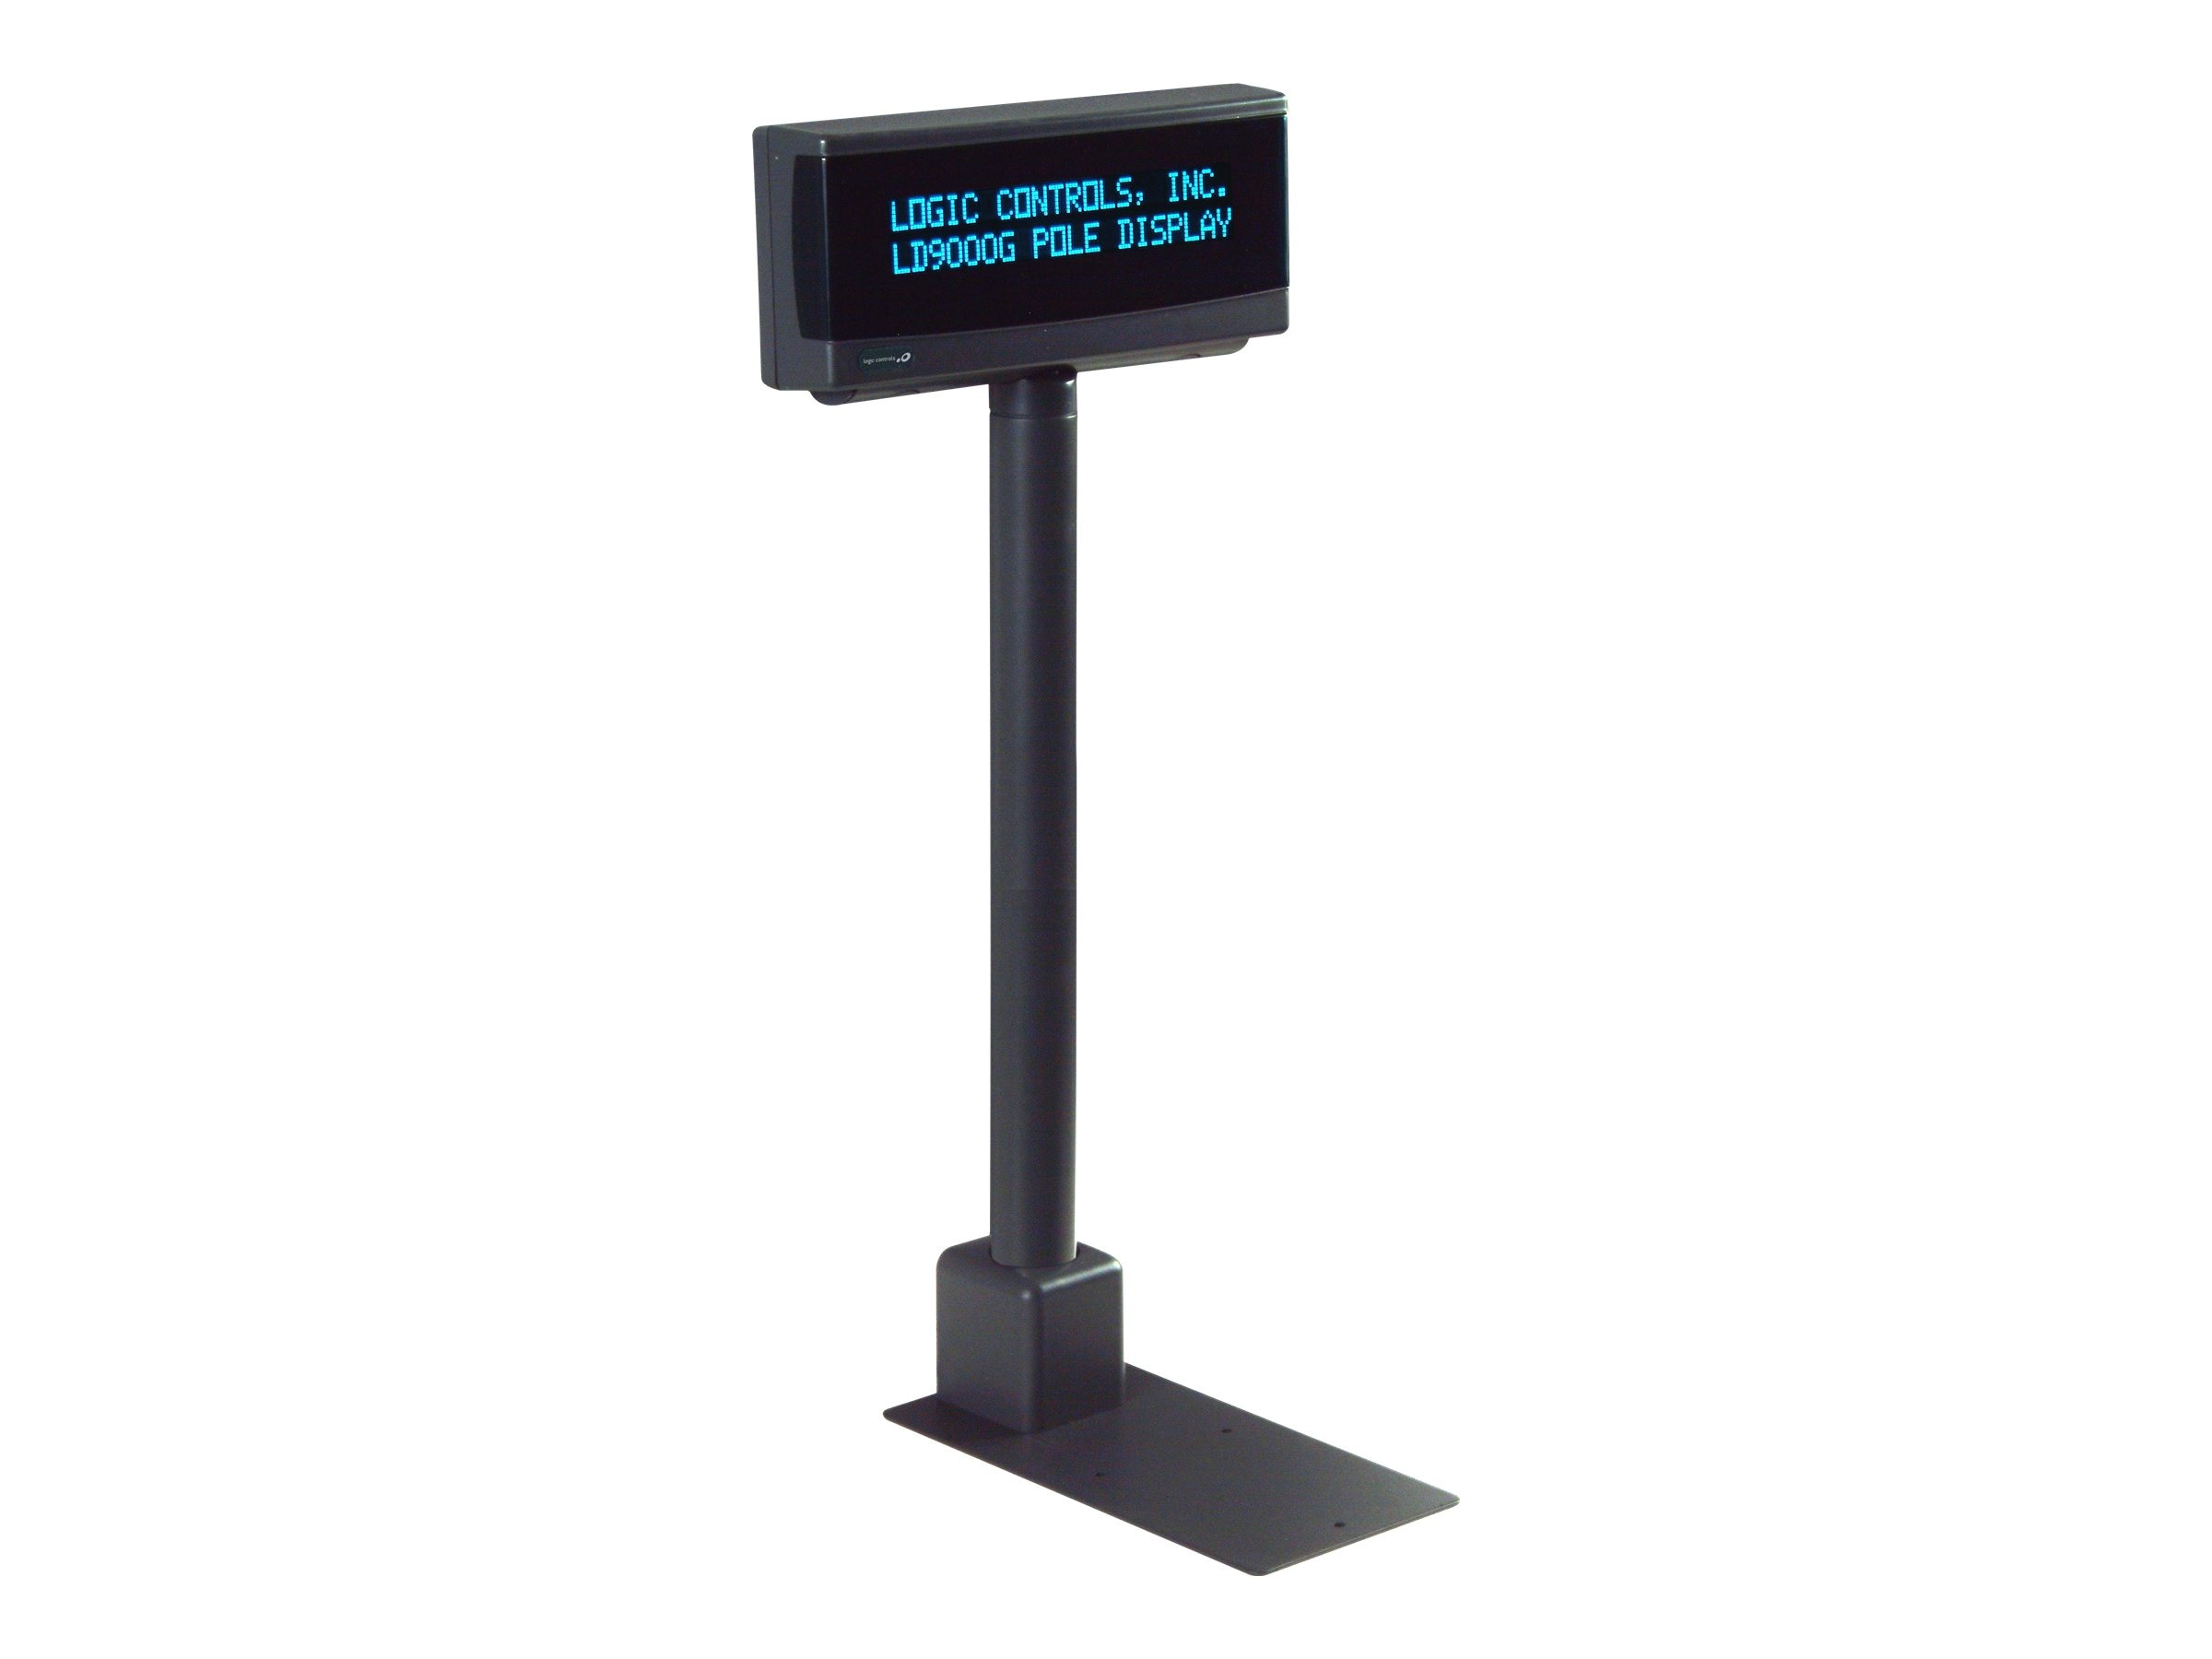 Logic Controls Bematech Pole Display, 9.5mm 2x20, USB, Dark Gray